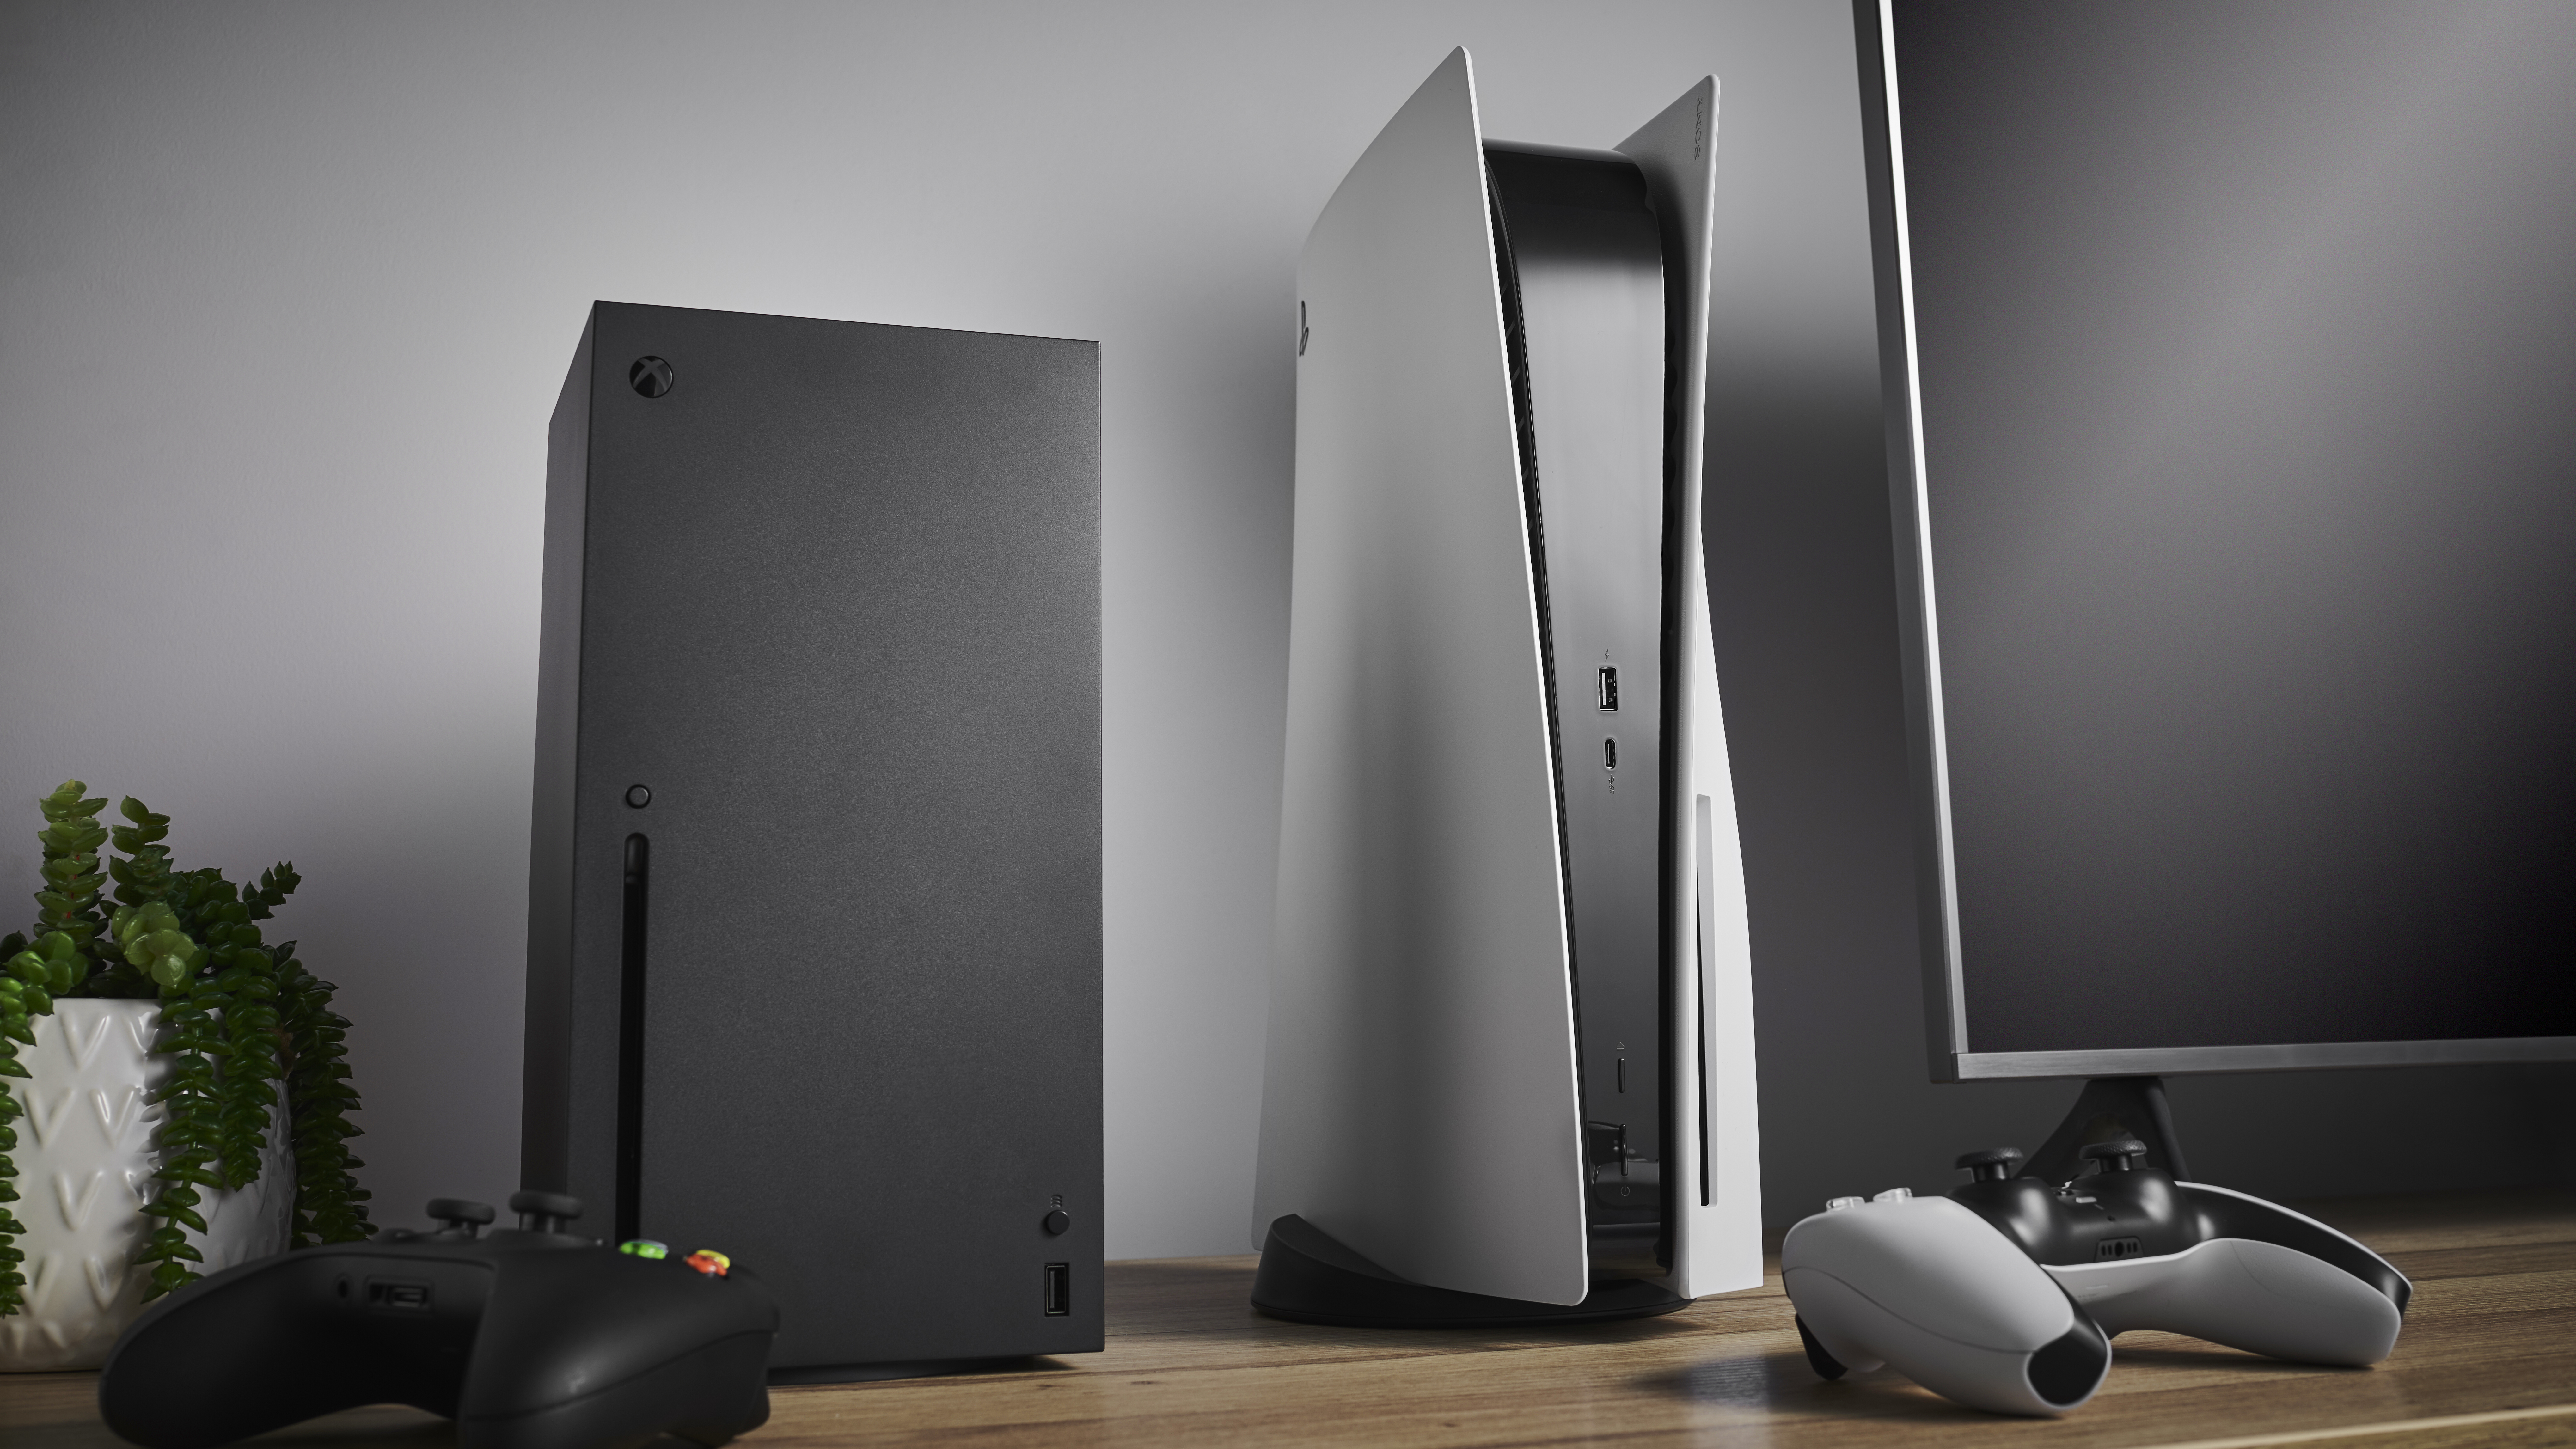 How to choose the best TV for gaming